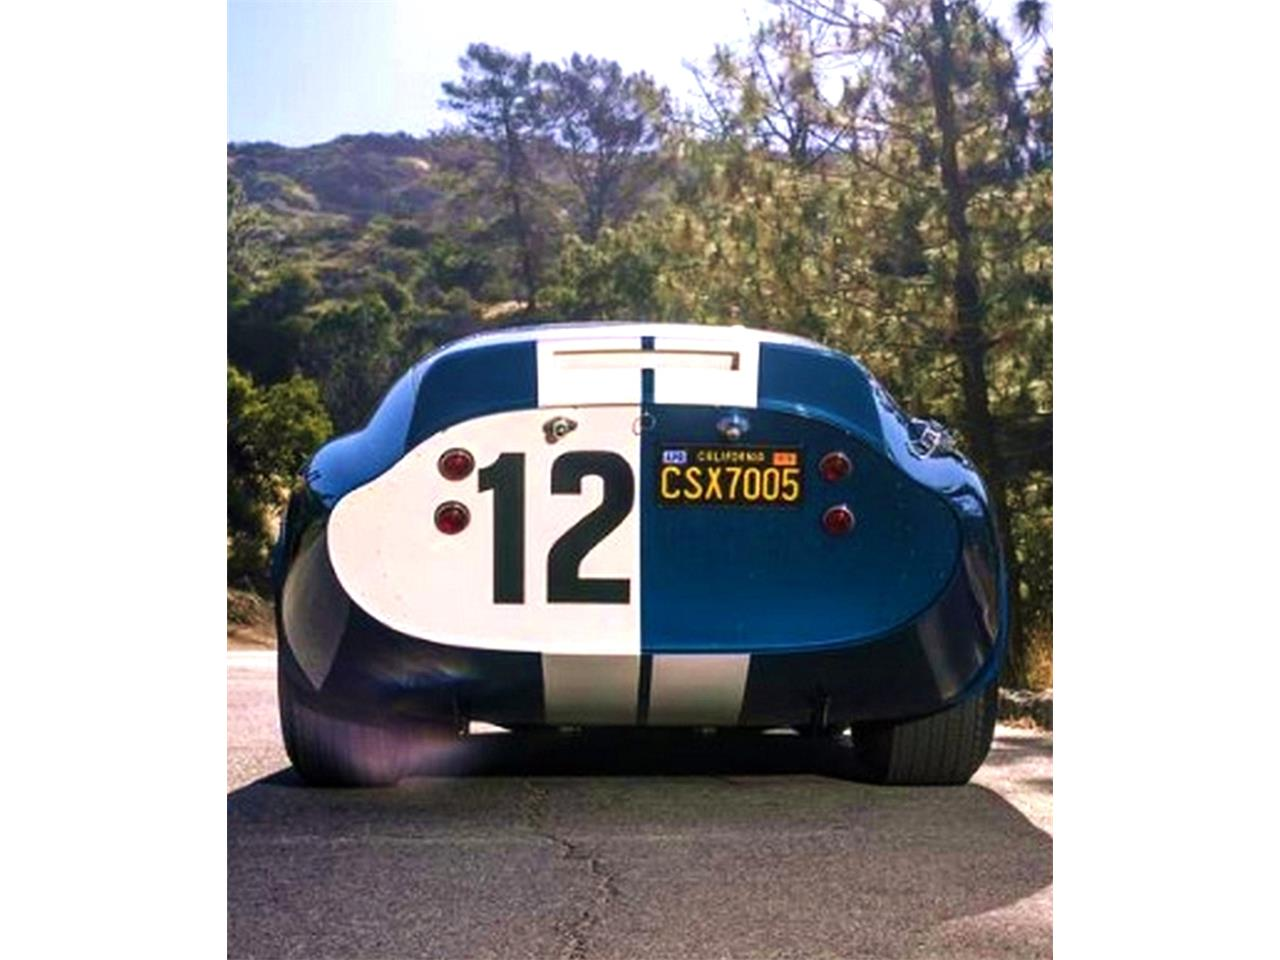 Large Picture of Classic 1962 Daytona Coupe located in California - $375,000.00 - LBP2